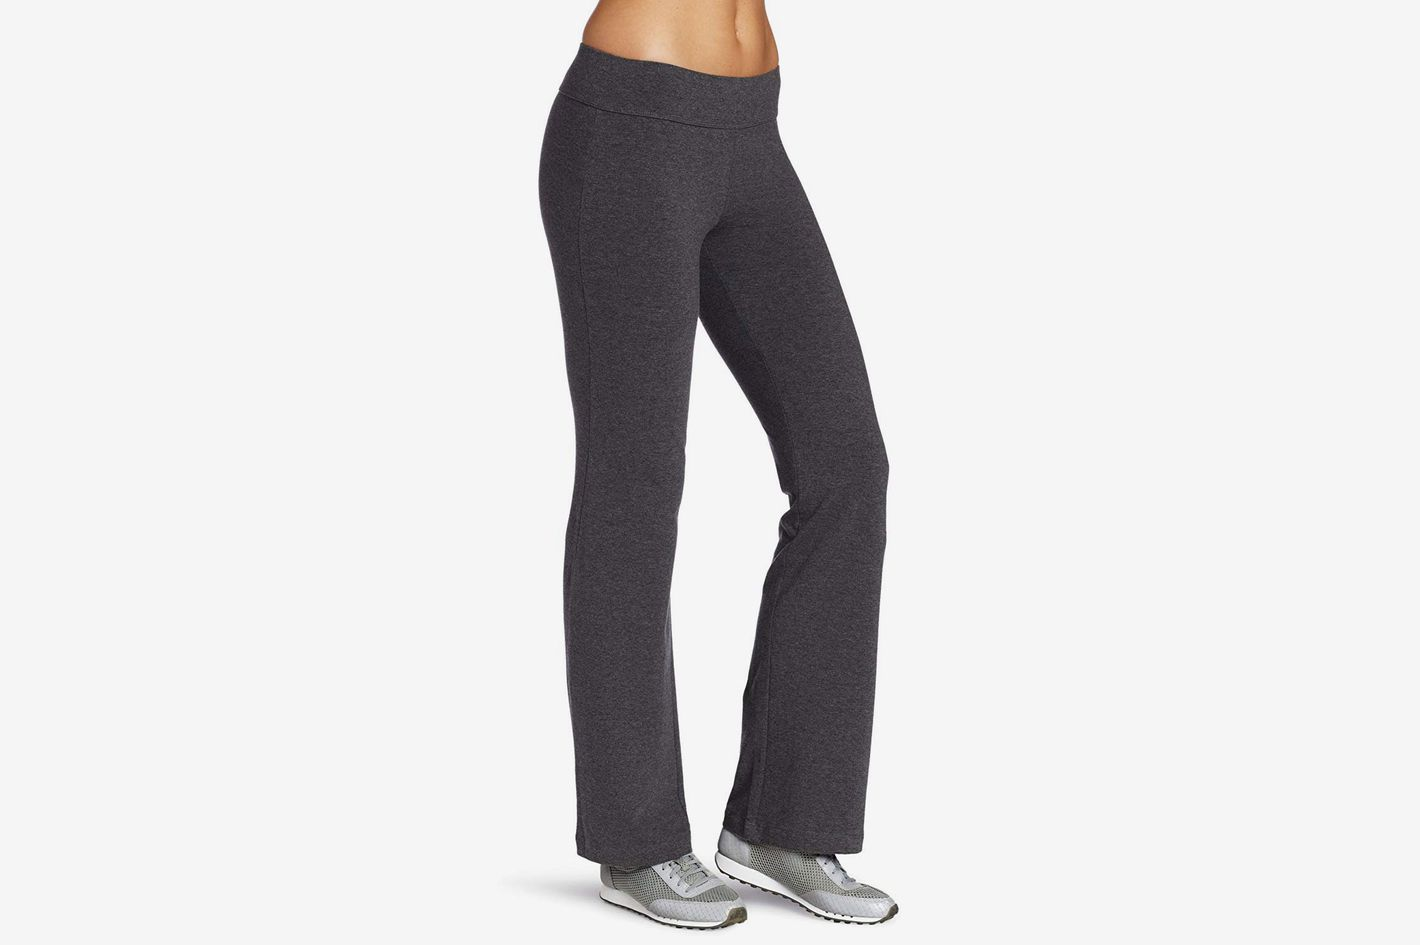 73dc0e95a58ce The 20 Best Yoga Pants for Women 2019